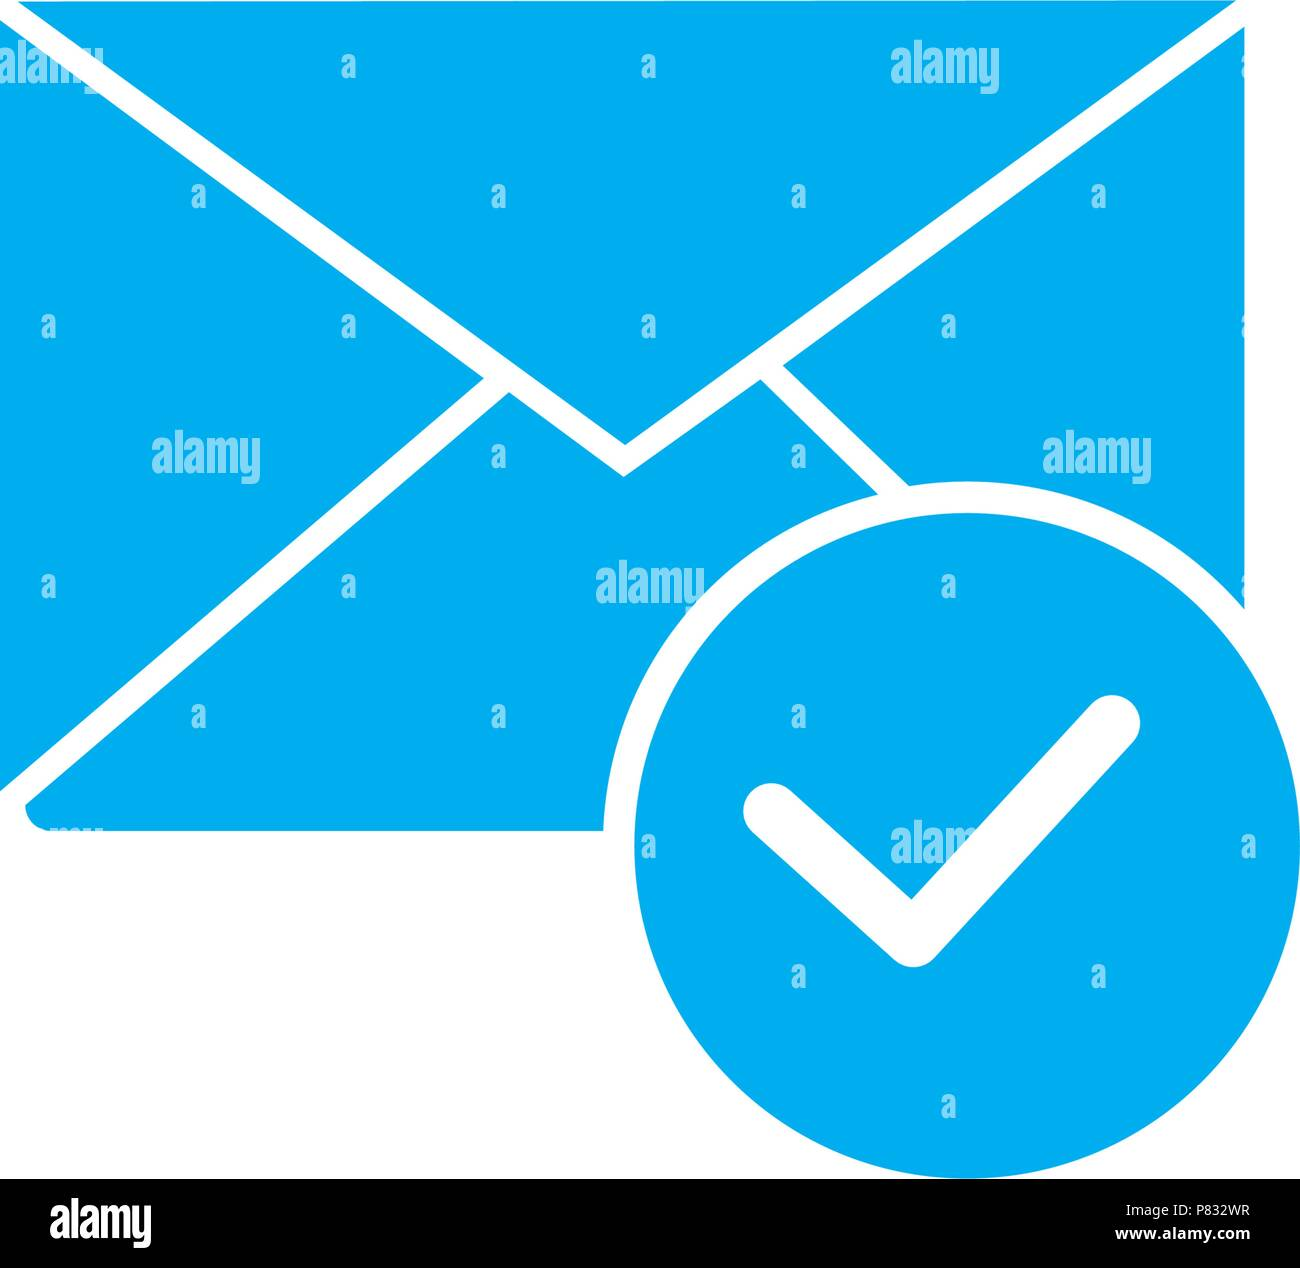 send email,web icon vector template stock vector art & illustration